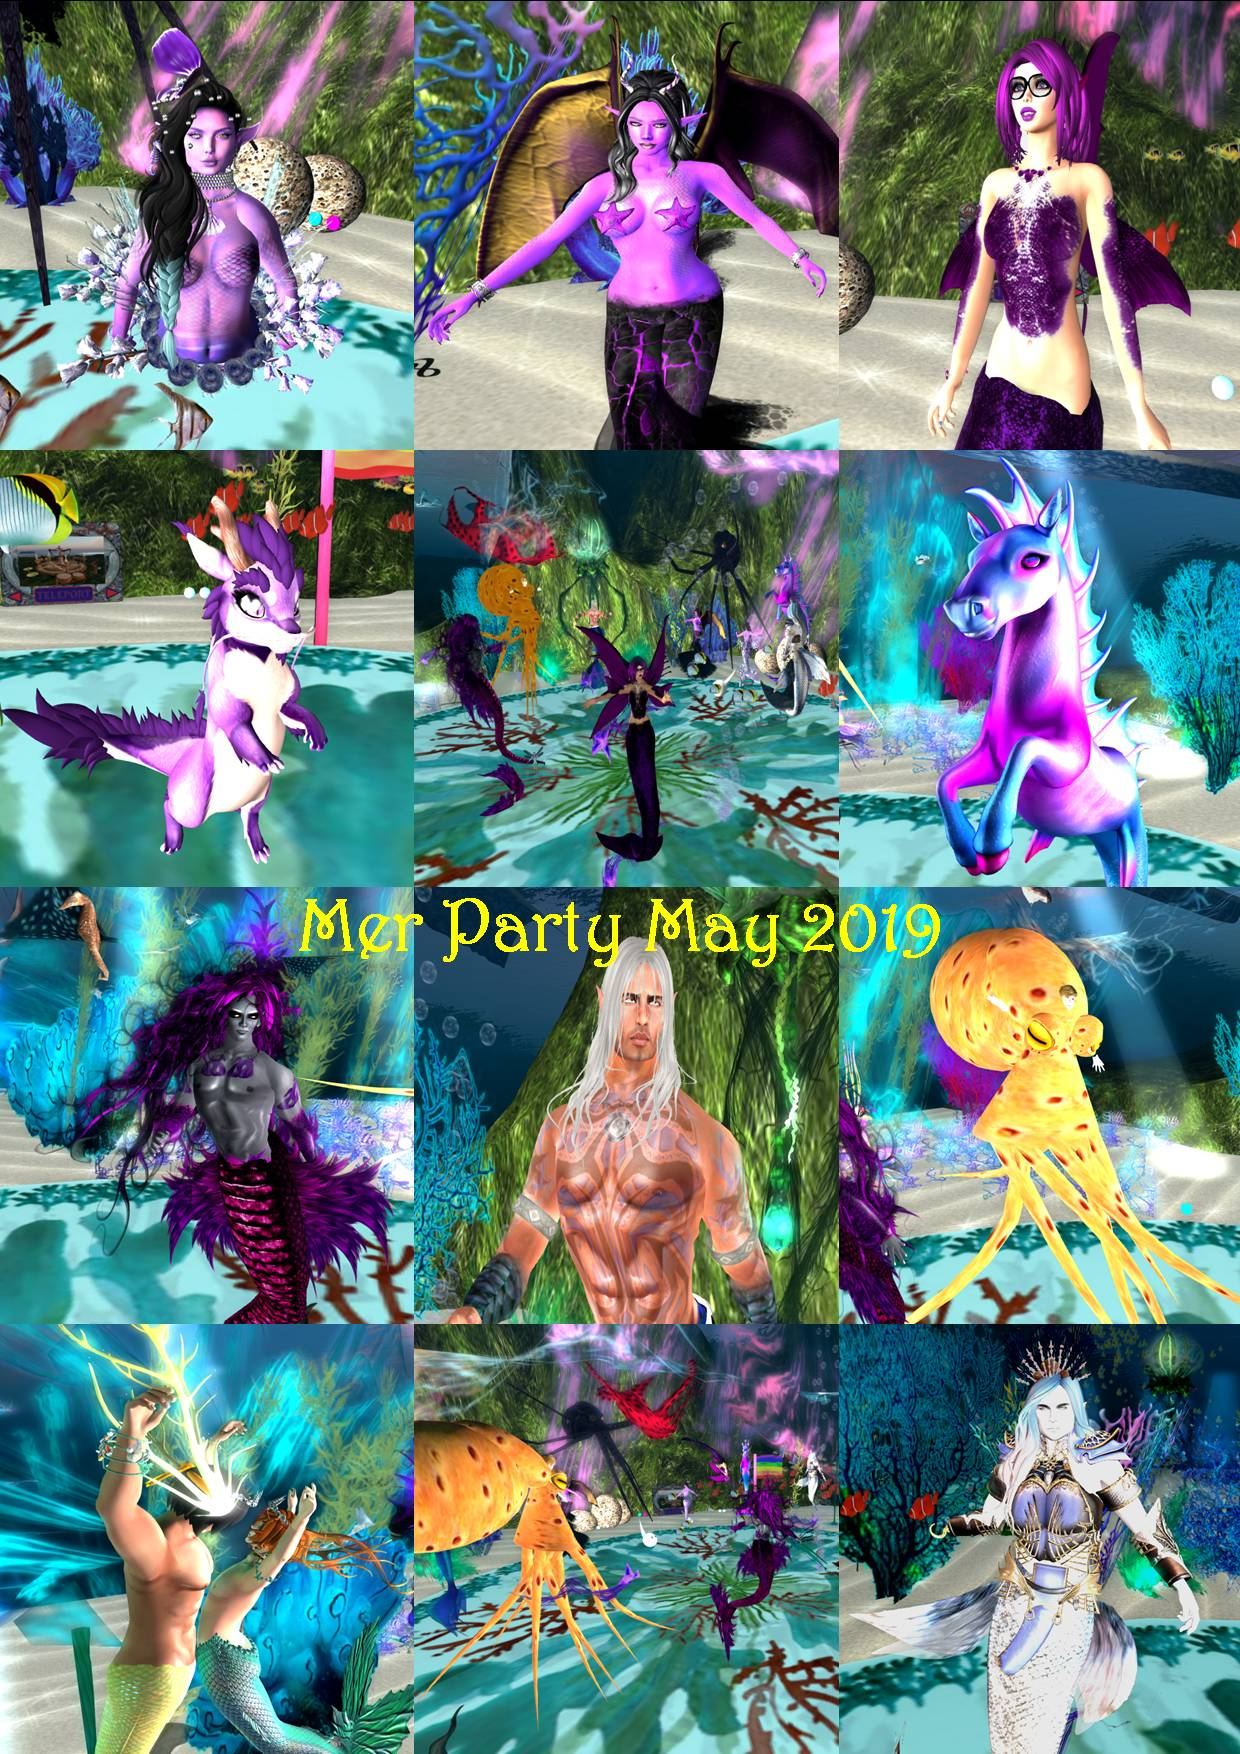 MER PARTY COLLAGE MAY 2019